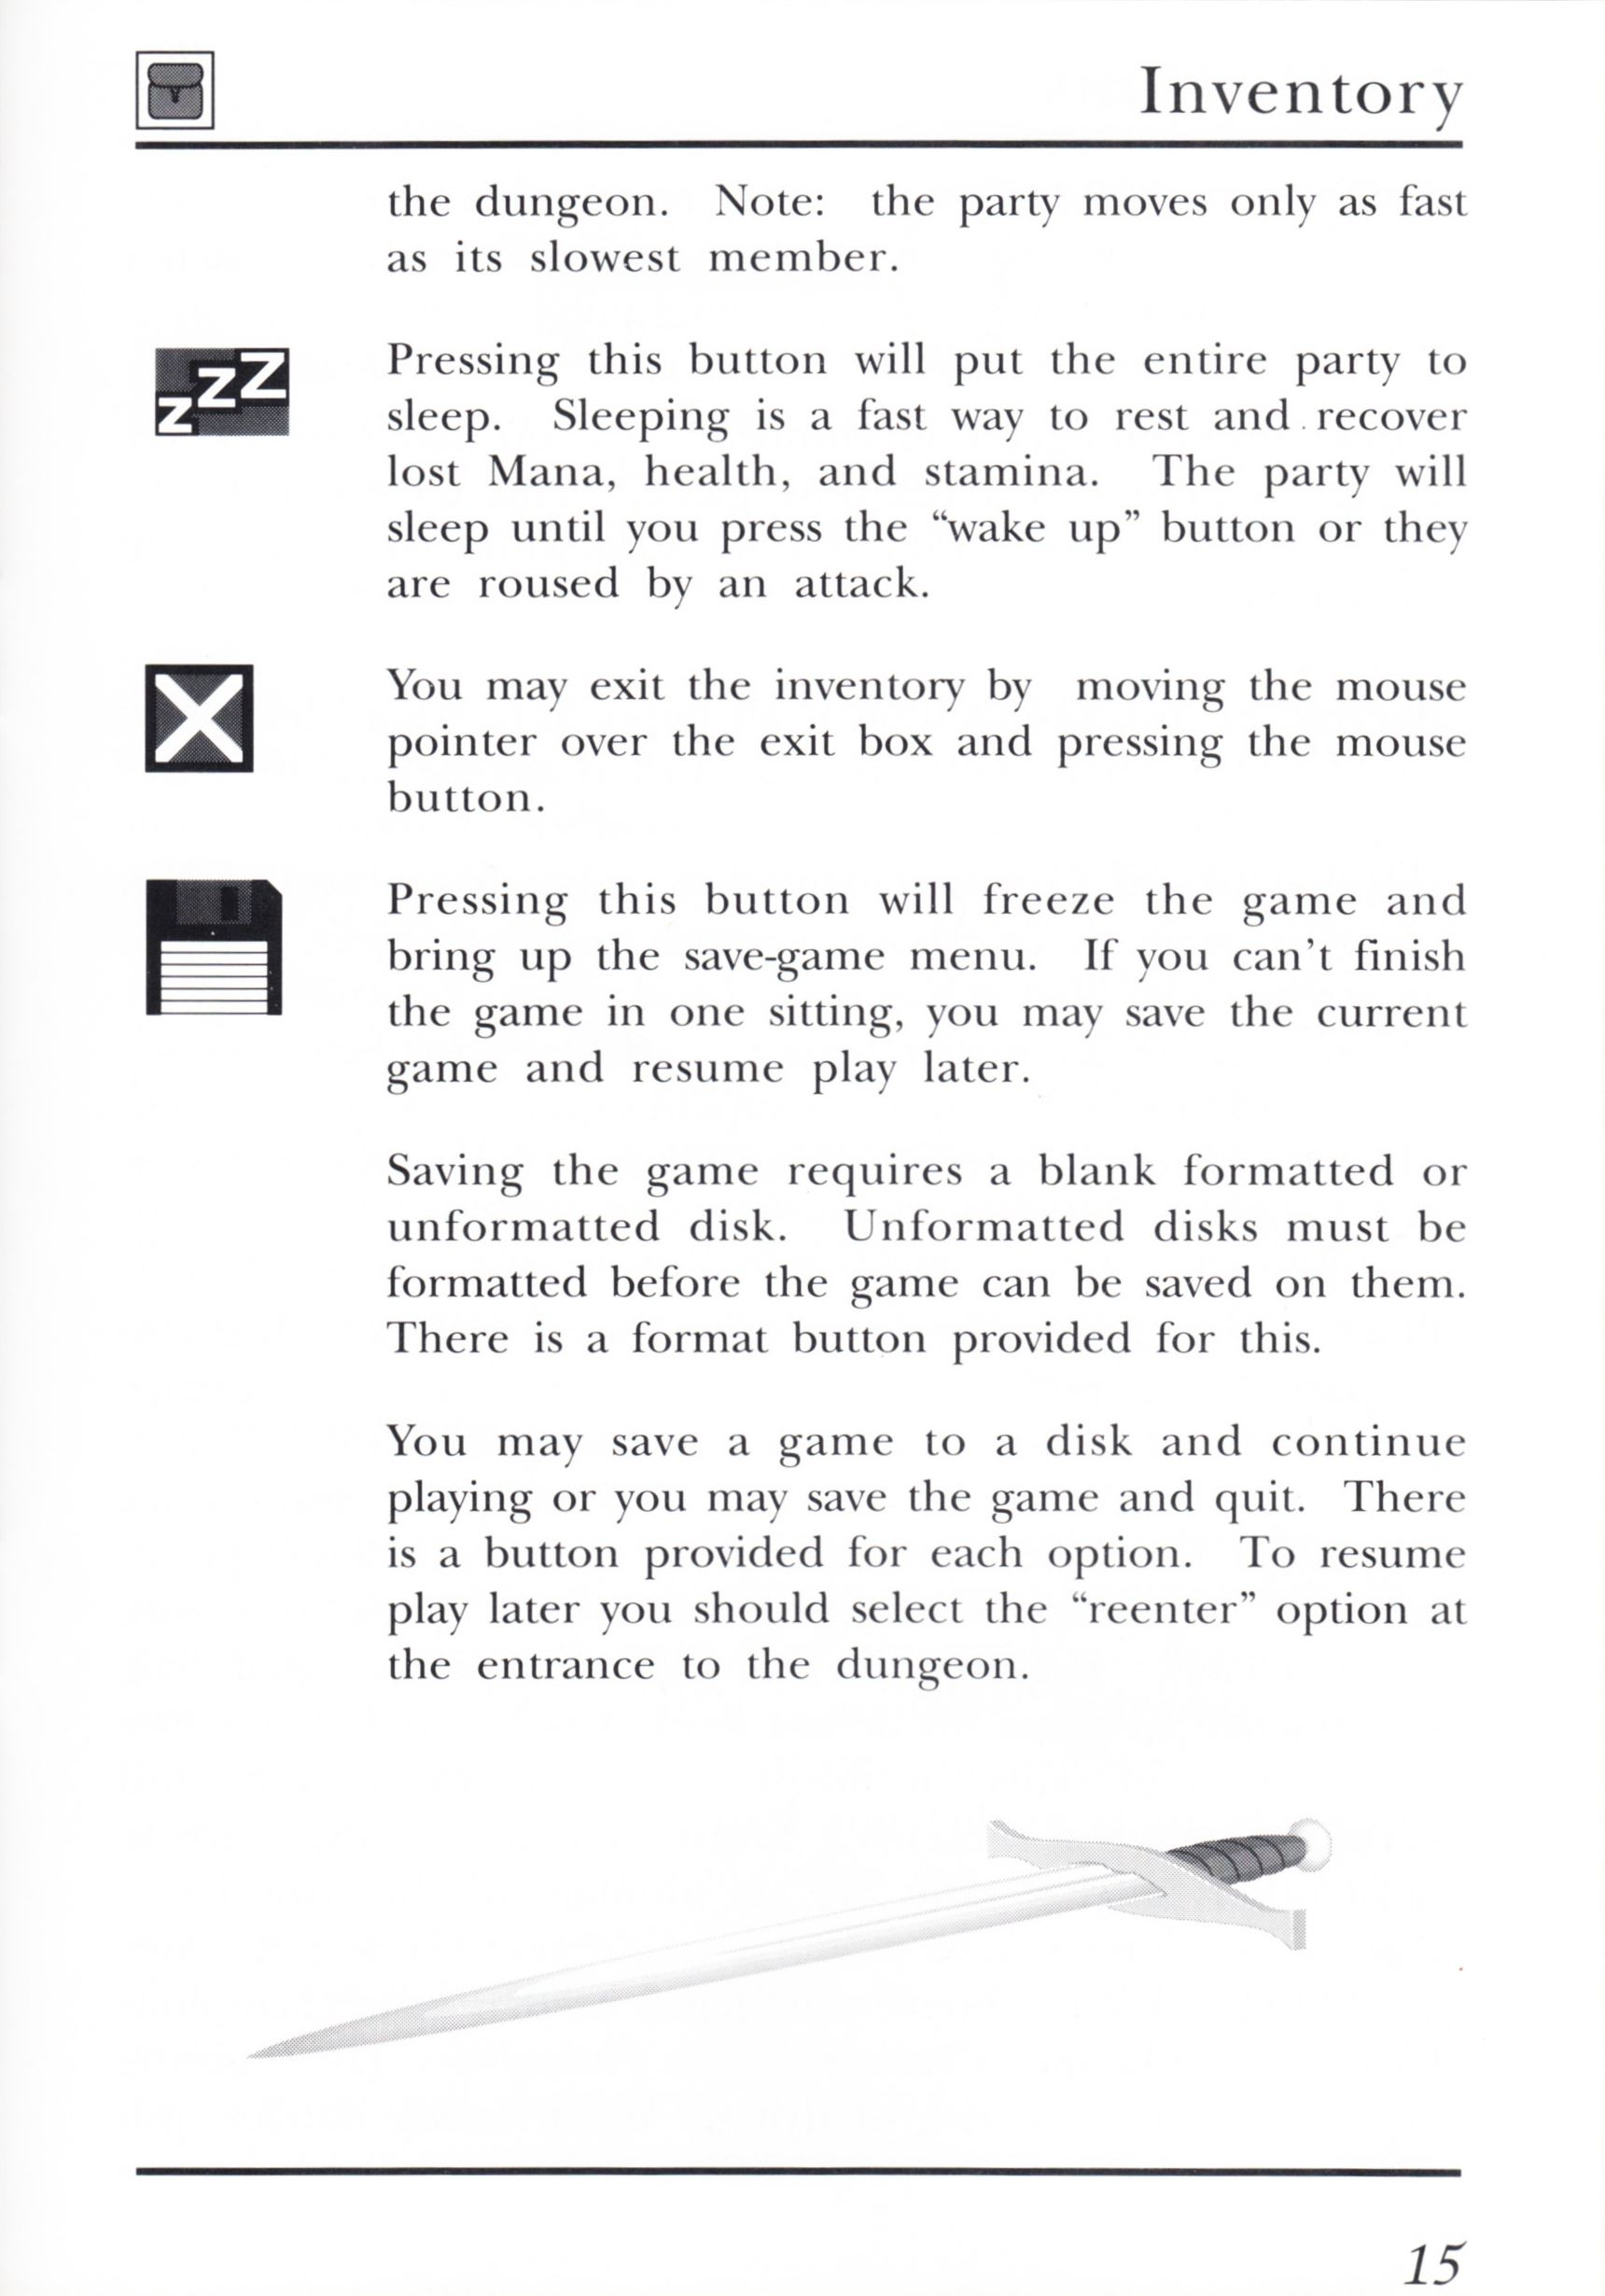 Game - Dungeon Master - UK - PC - Psygnosis - Manual - Page 035 - Scan